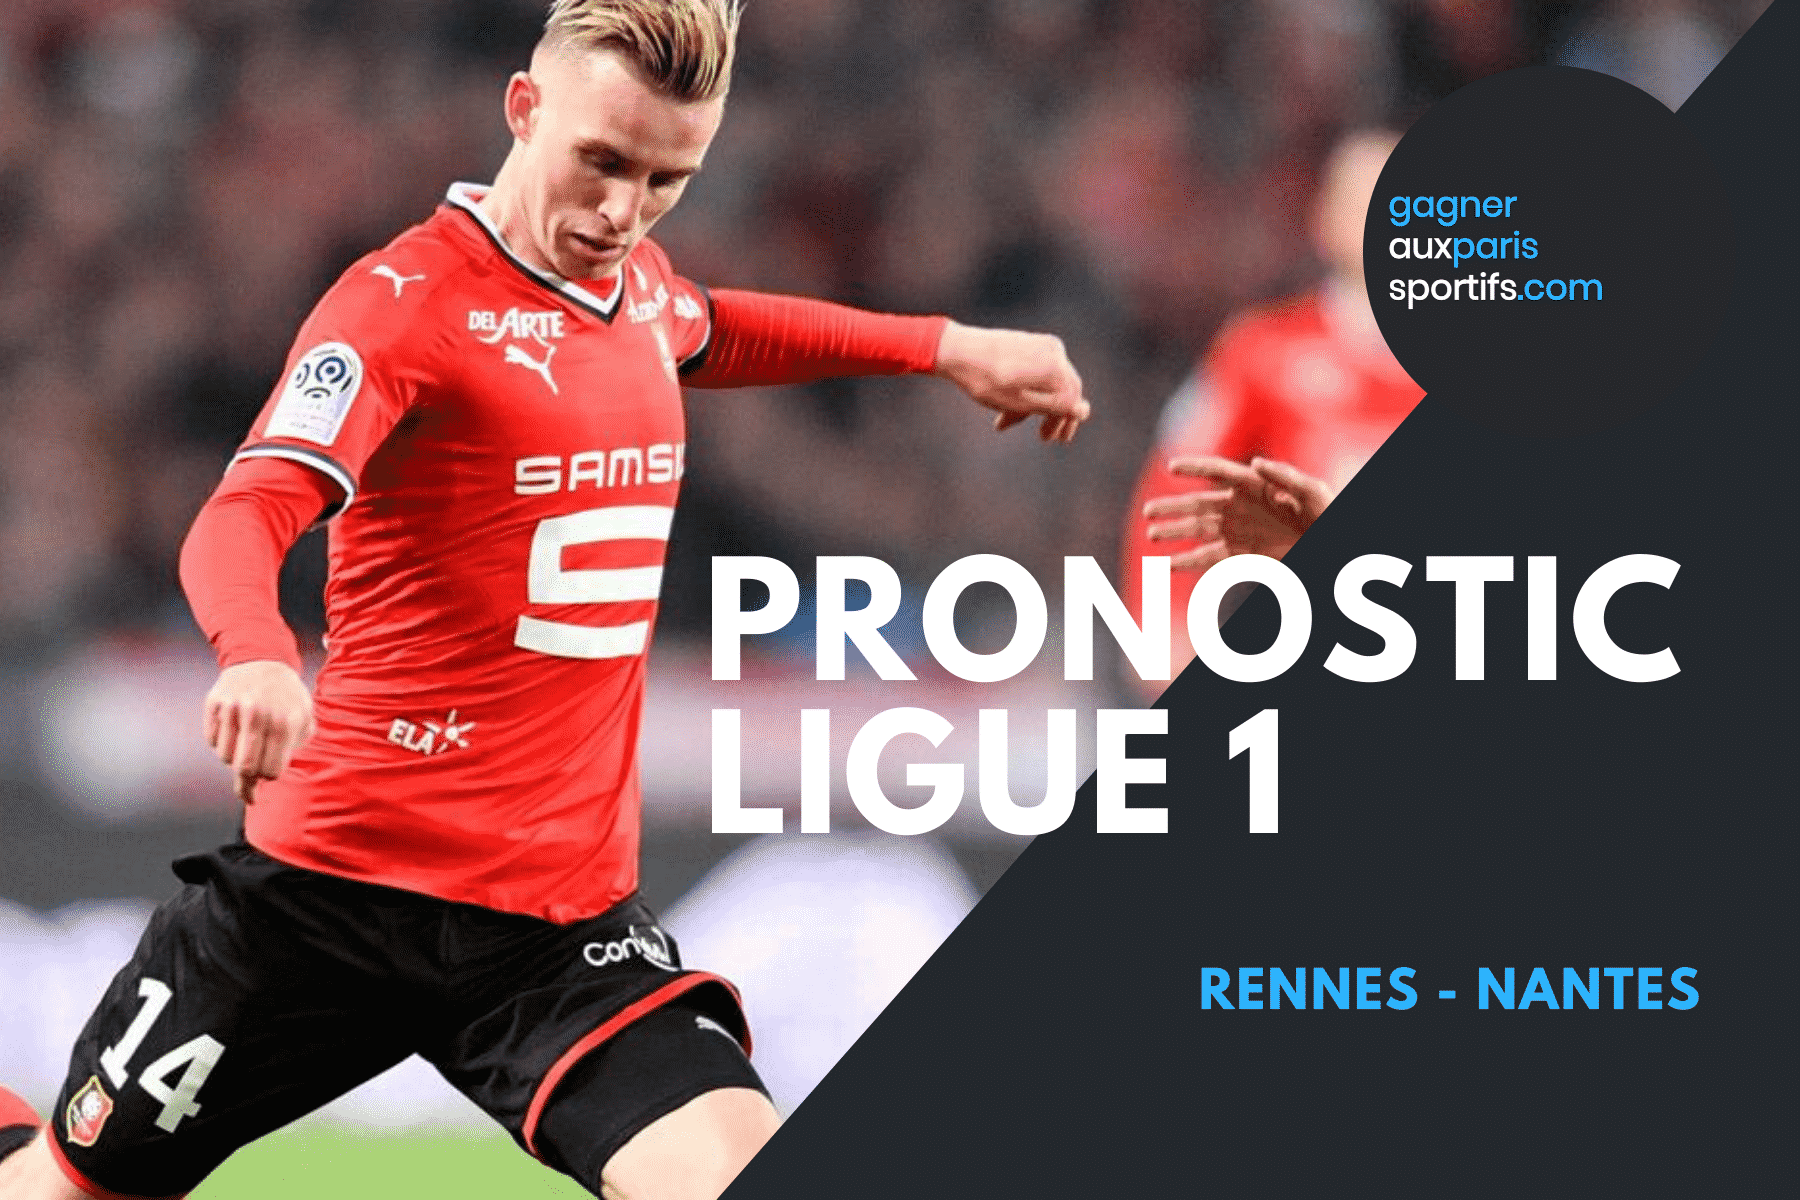 PRONOSTIC RENNES - NANTES LIGUE 1